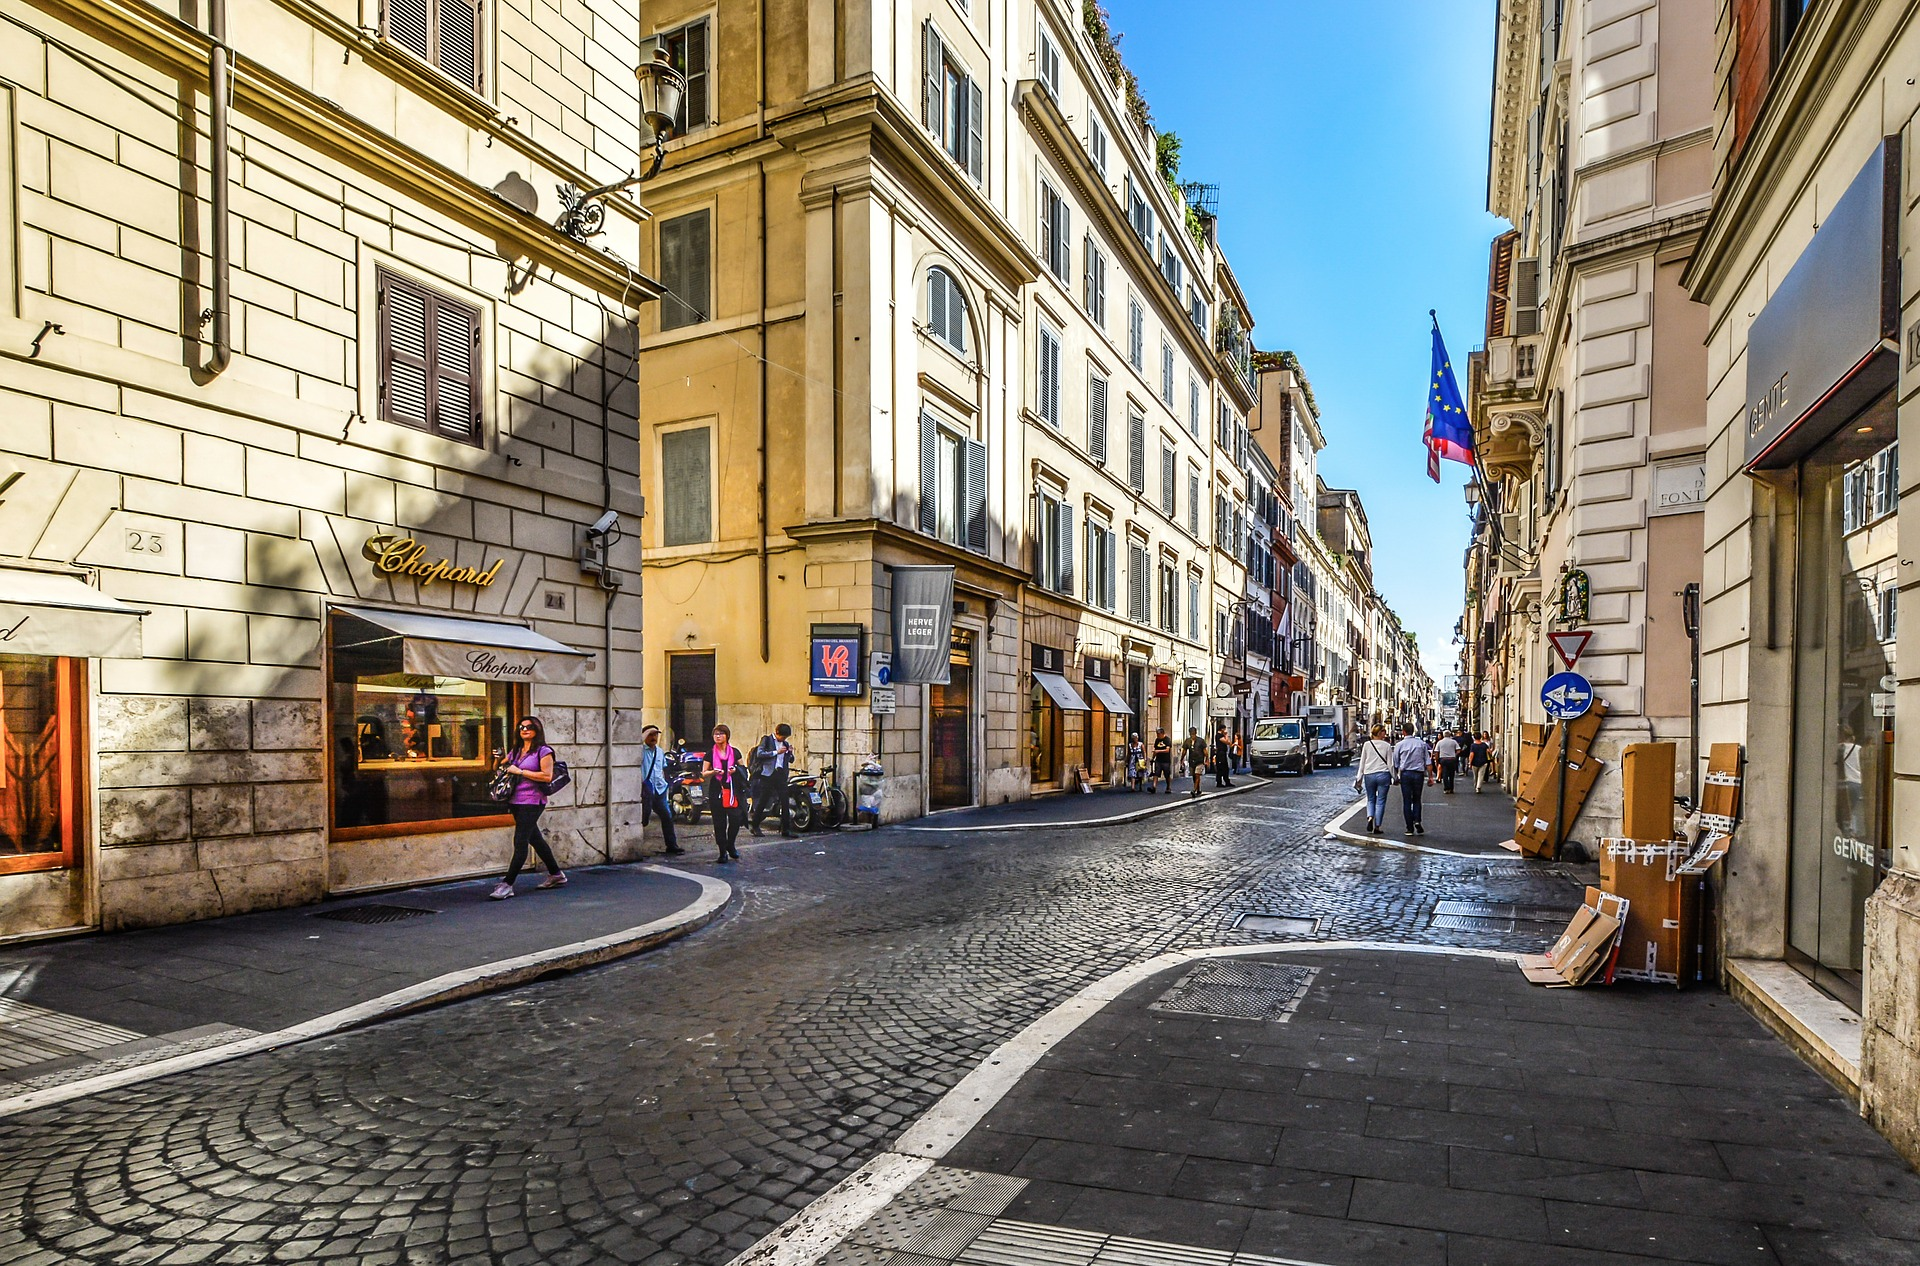 Street with shops in Rome